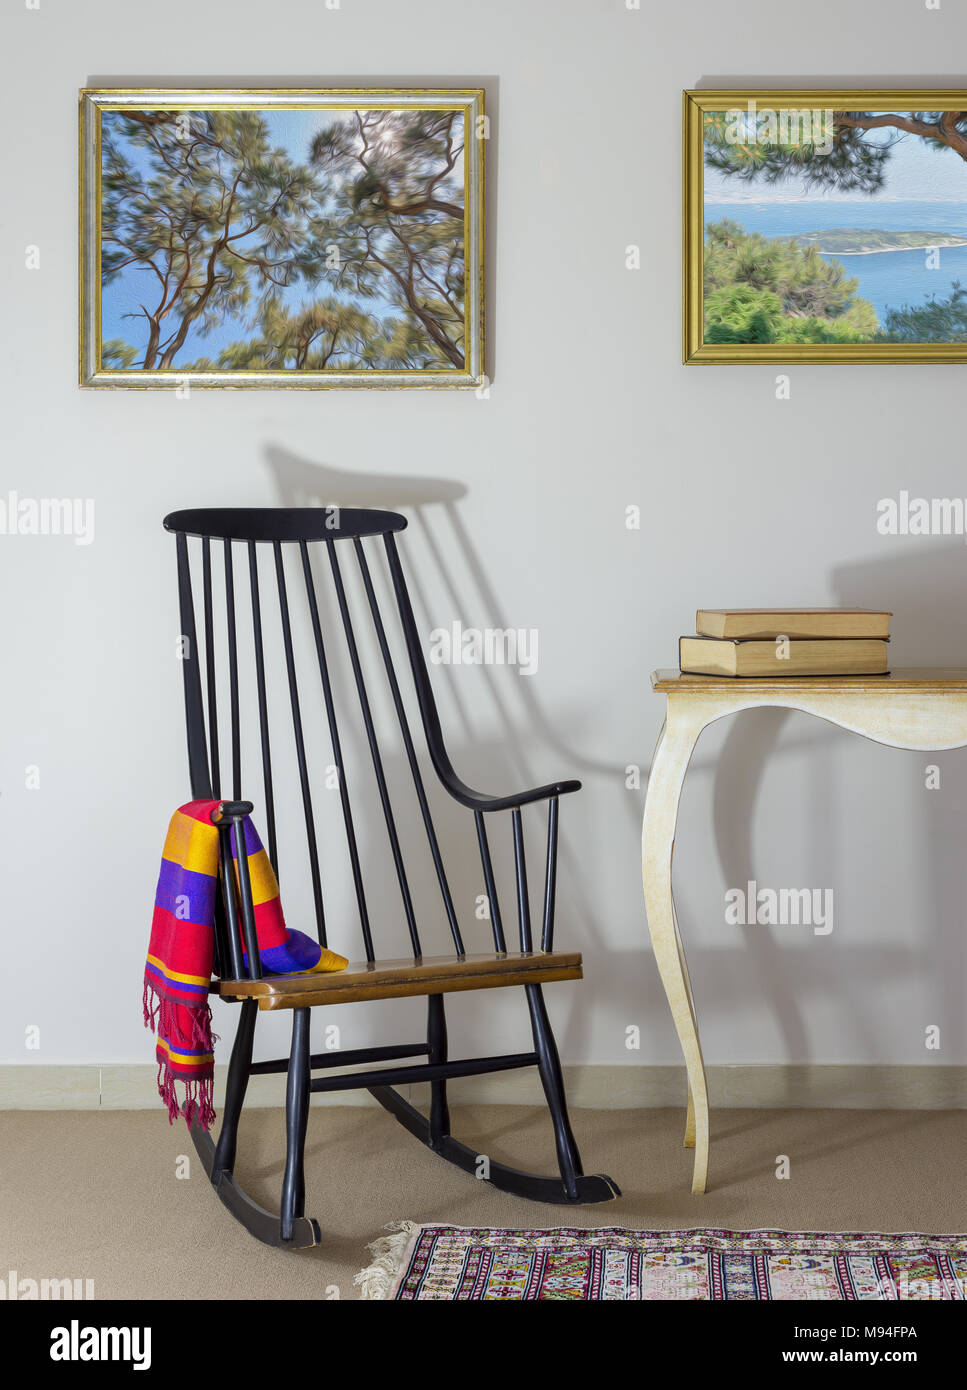 Interior Shot Of Classic Rocking Chair And Two Old Books On Old Style  Vintage Table On Background Of Off White Wall With Two Hanged Paintings  Includin